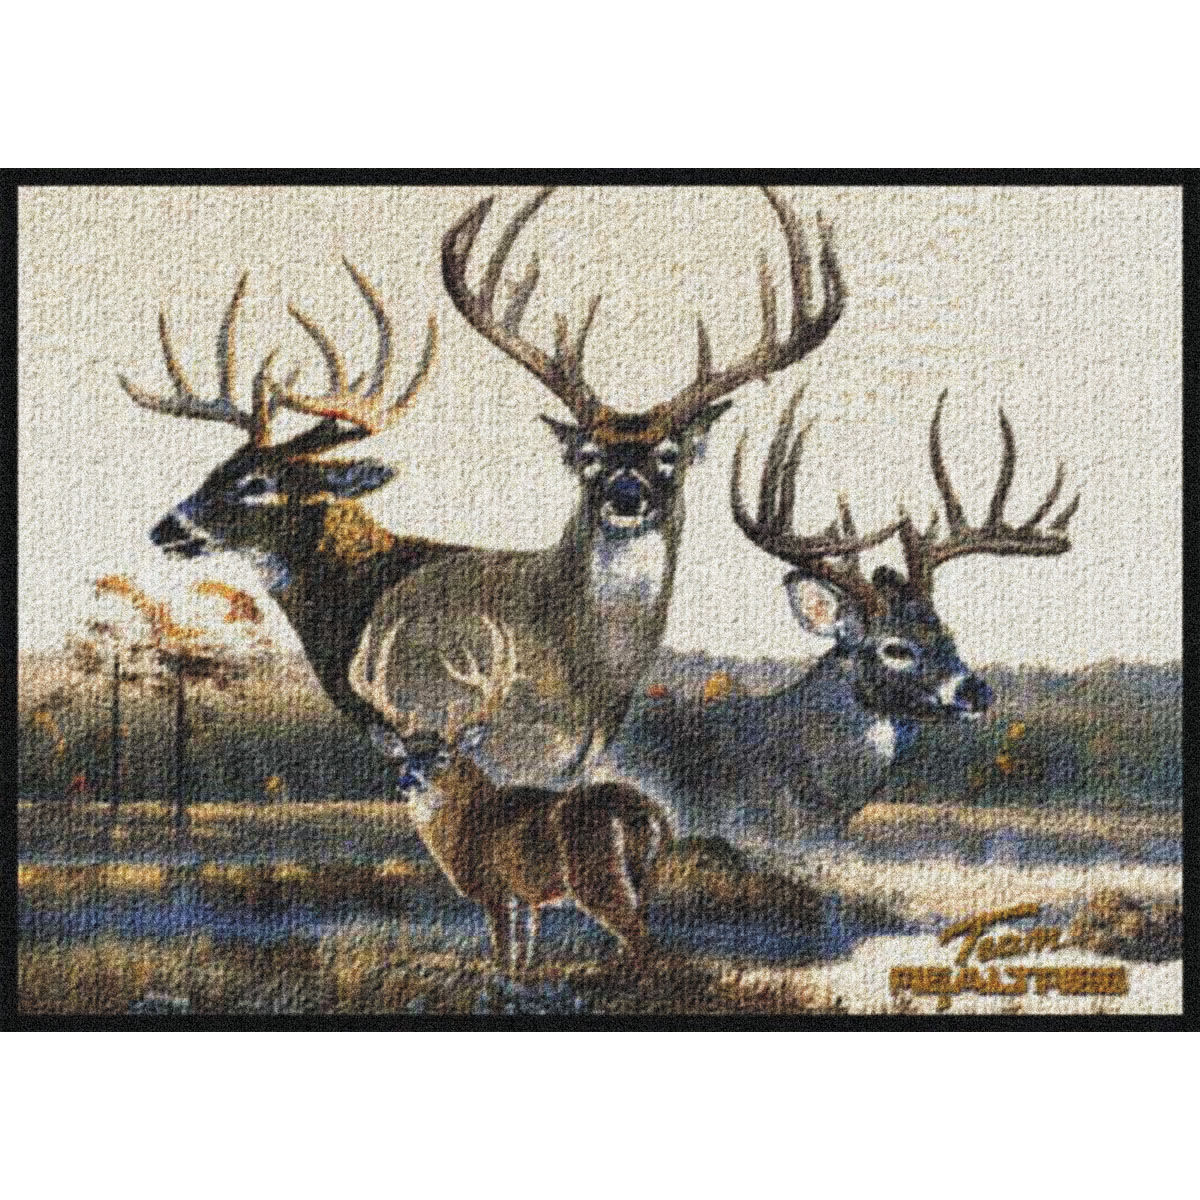 Realtree Team Realtree Bucks VI Rug   534711 74054 By Milliken 1200x1200